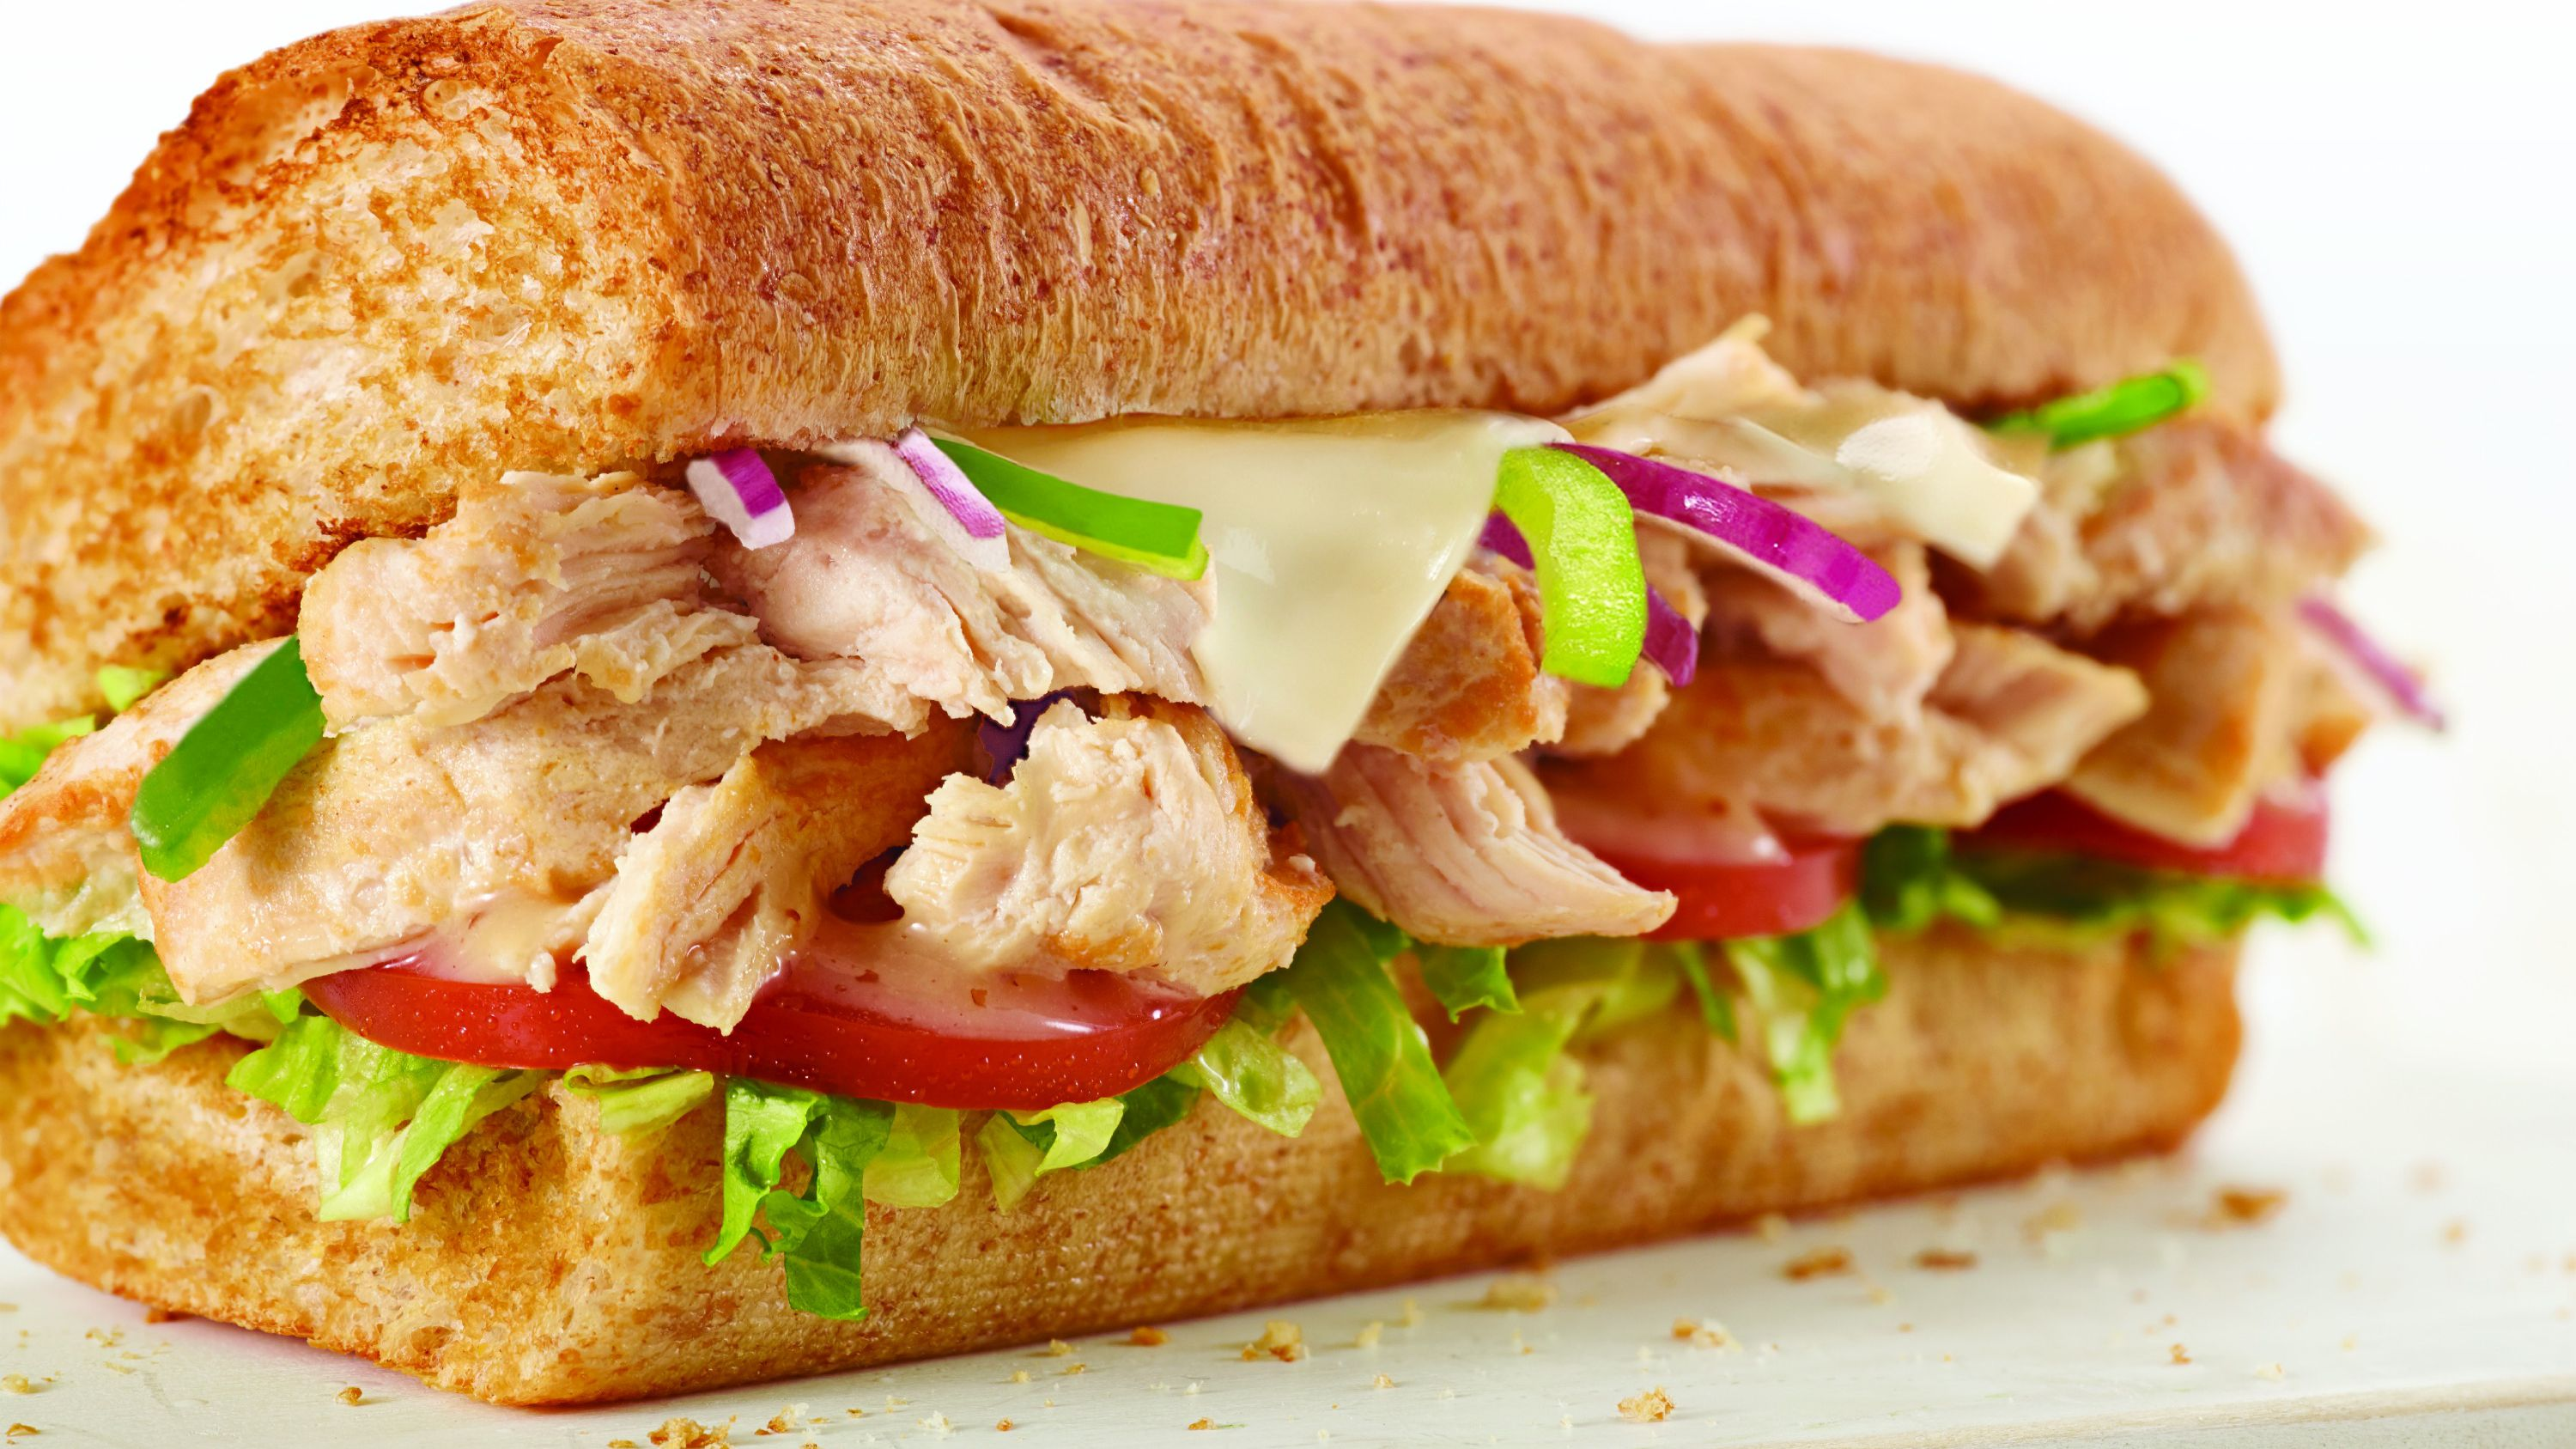 Subway Nutrition Facts Healthy Menu Choices For Every Diet